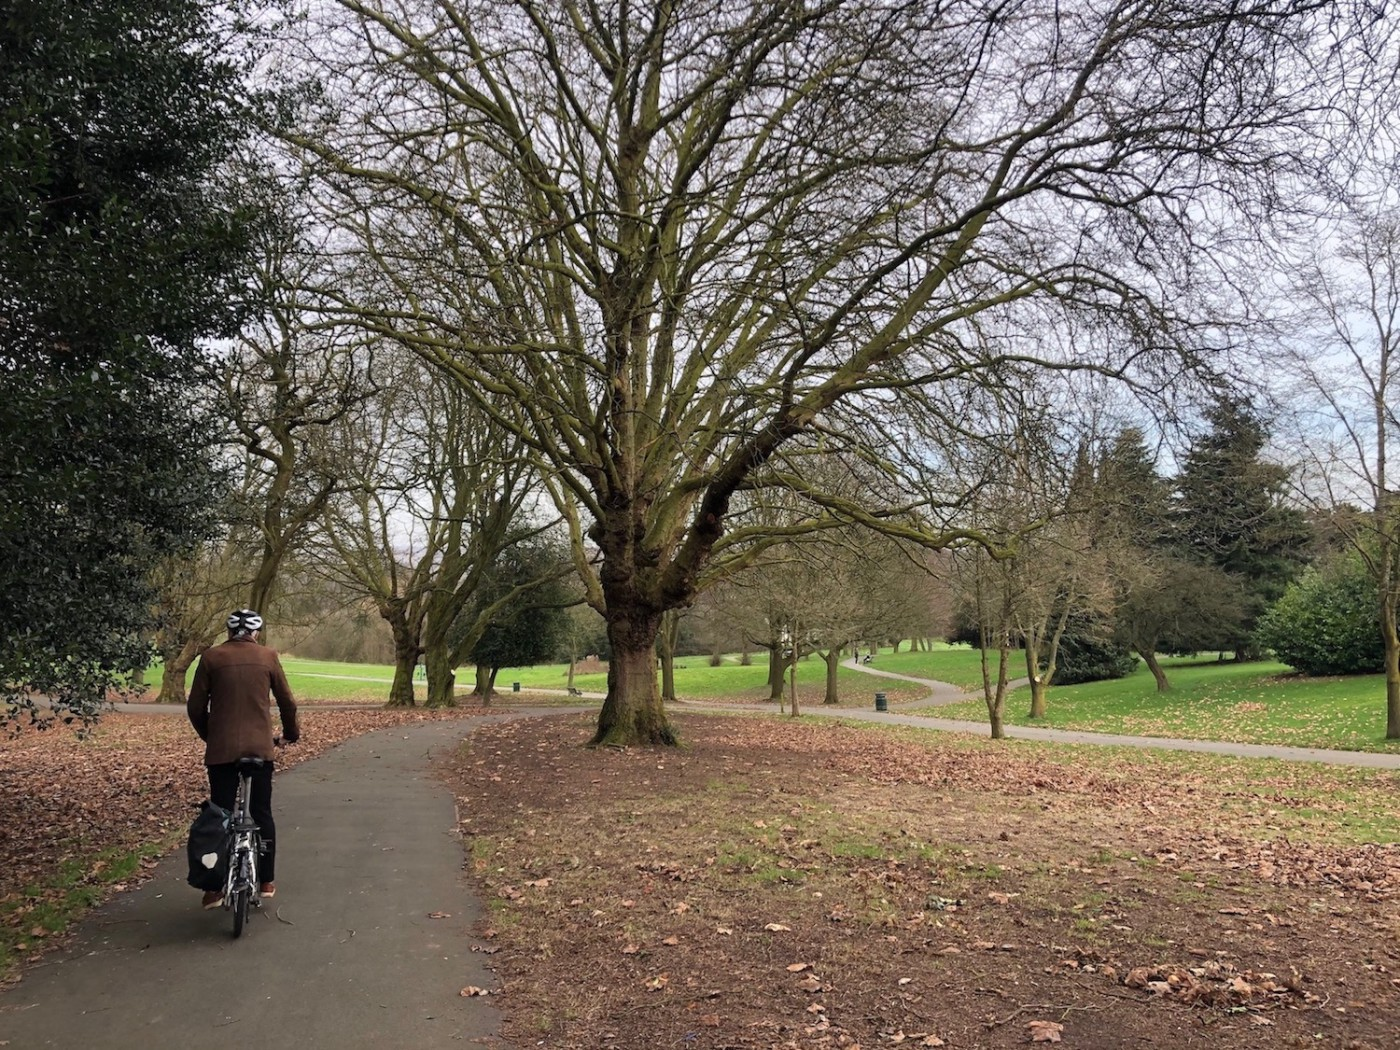 Person cycling through a park on a grey autumn day, trees are bare and leaves are on the ground